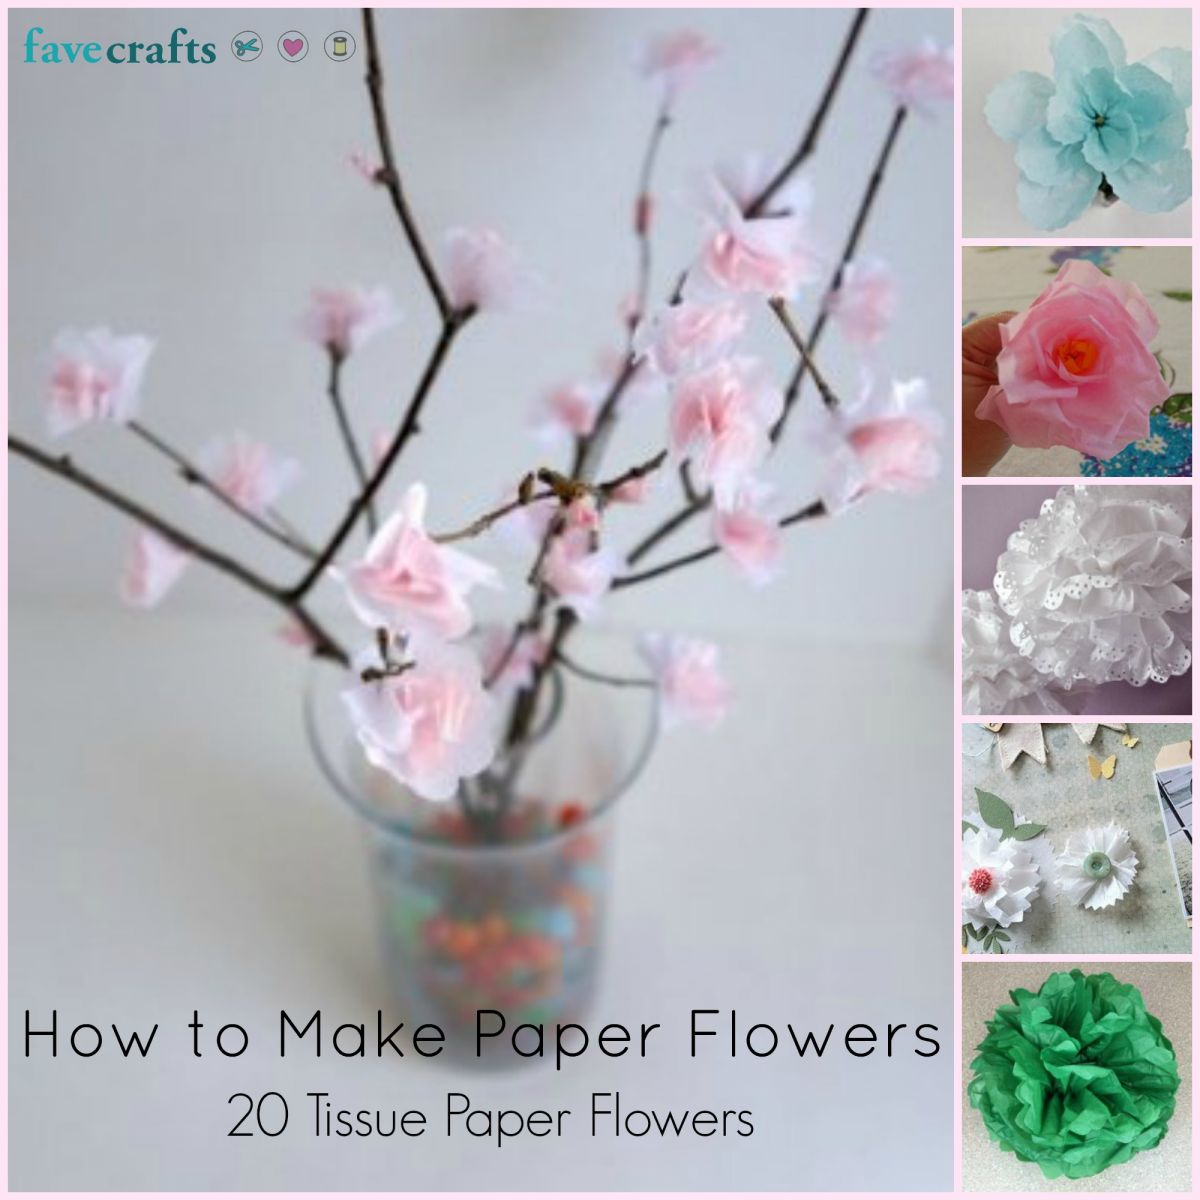 How to Make Paper Flowers 20 Tissue Paper Flowers